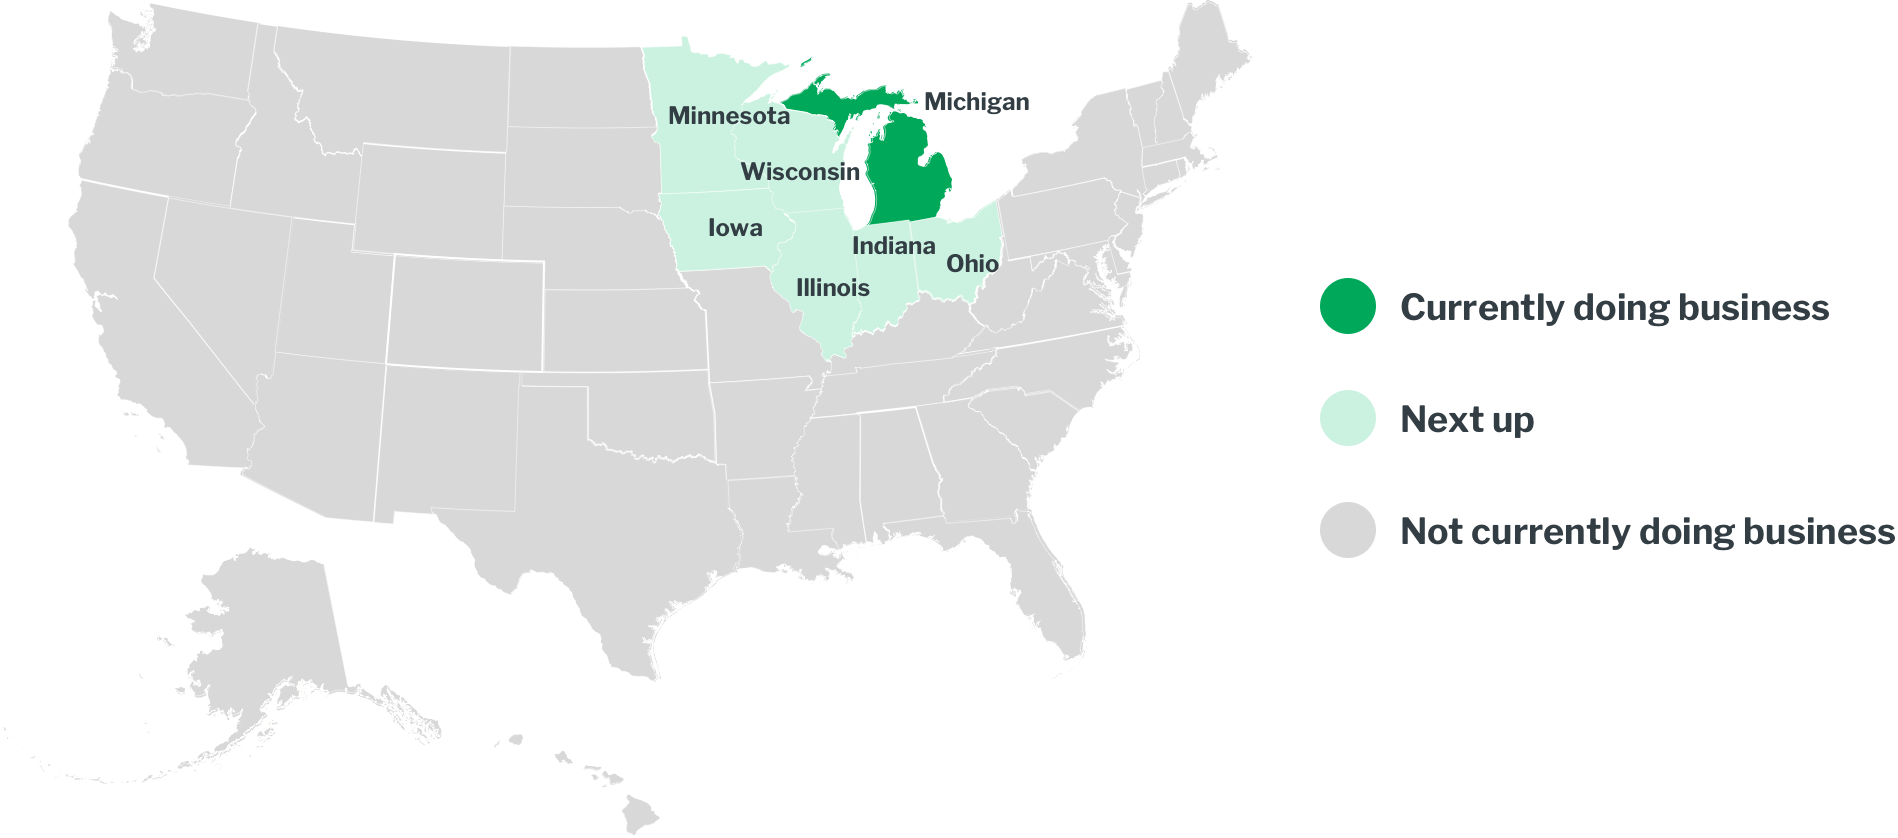 US Map of States with business status of each state highlighted